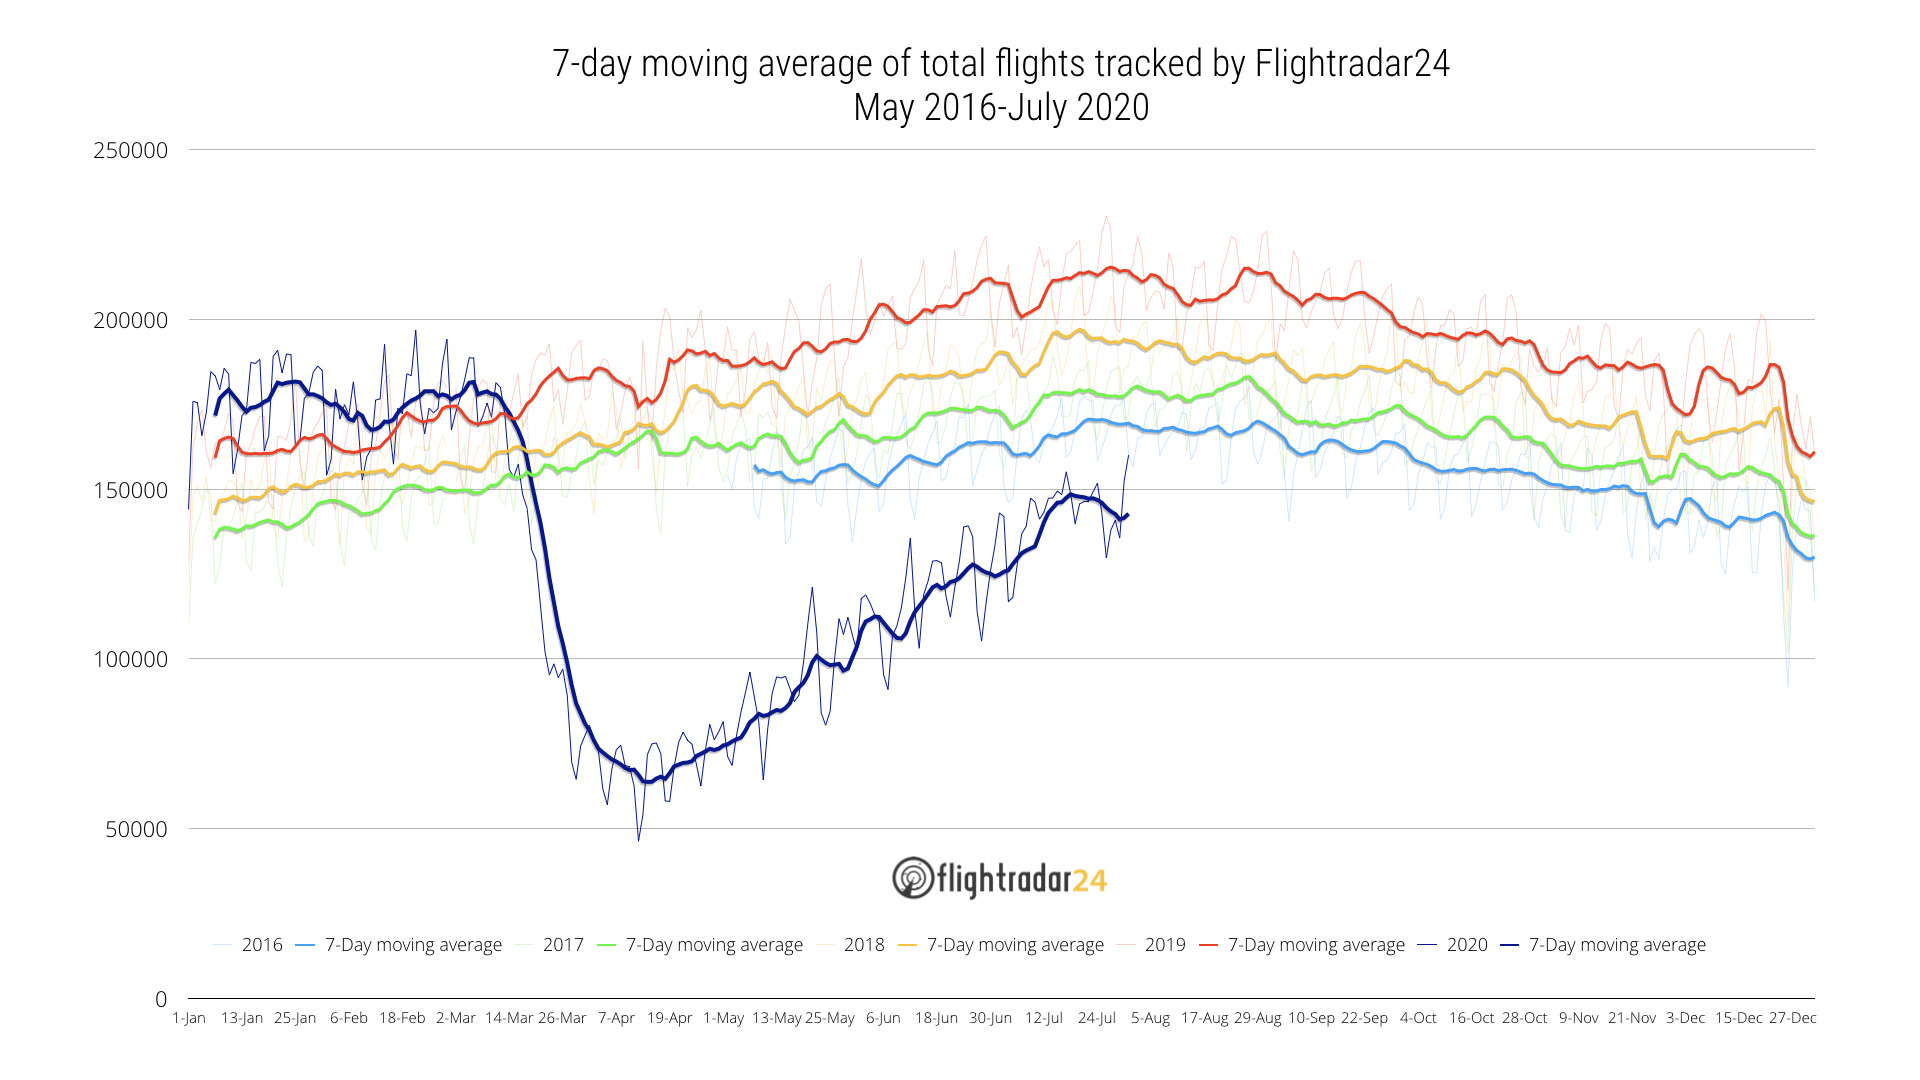 Total Flights tracked 2016-July 2020